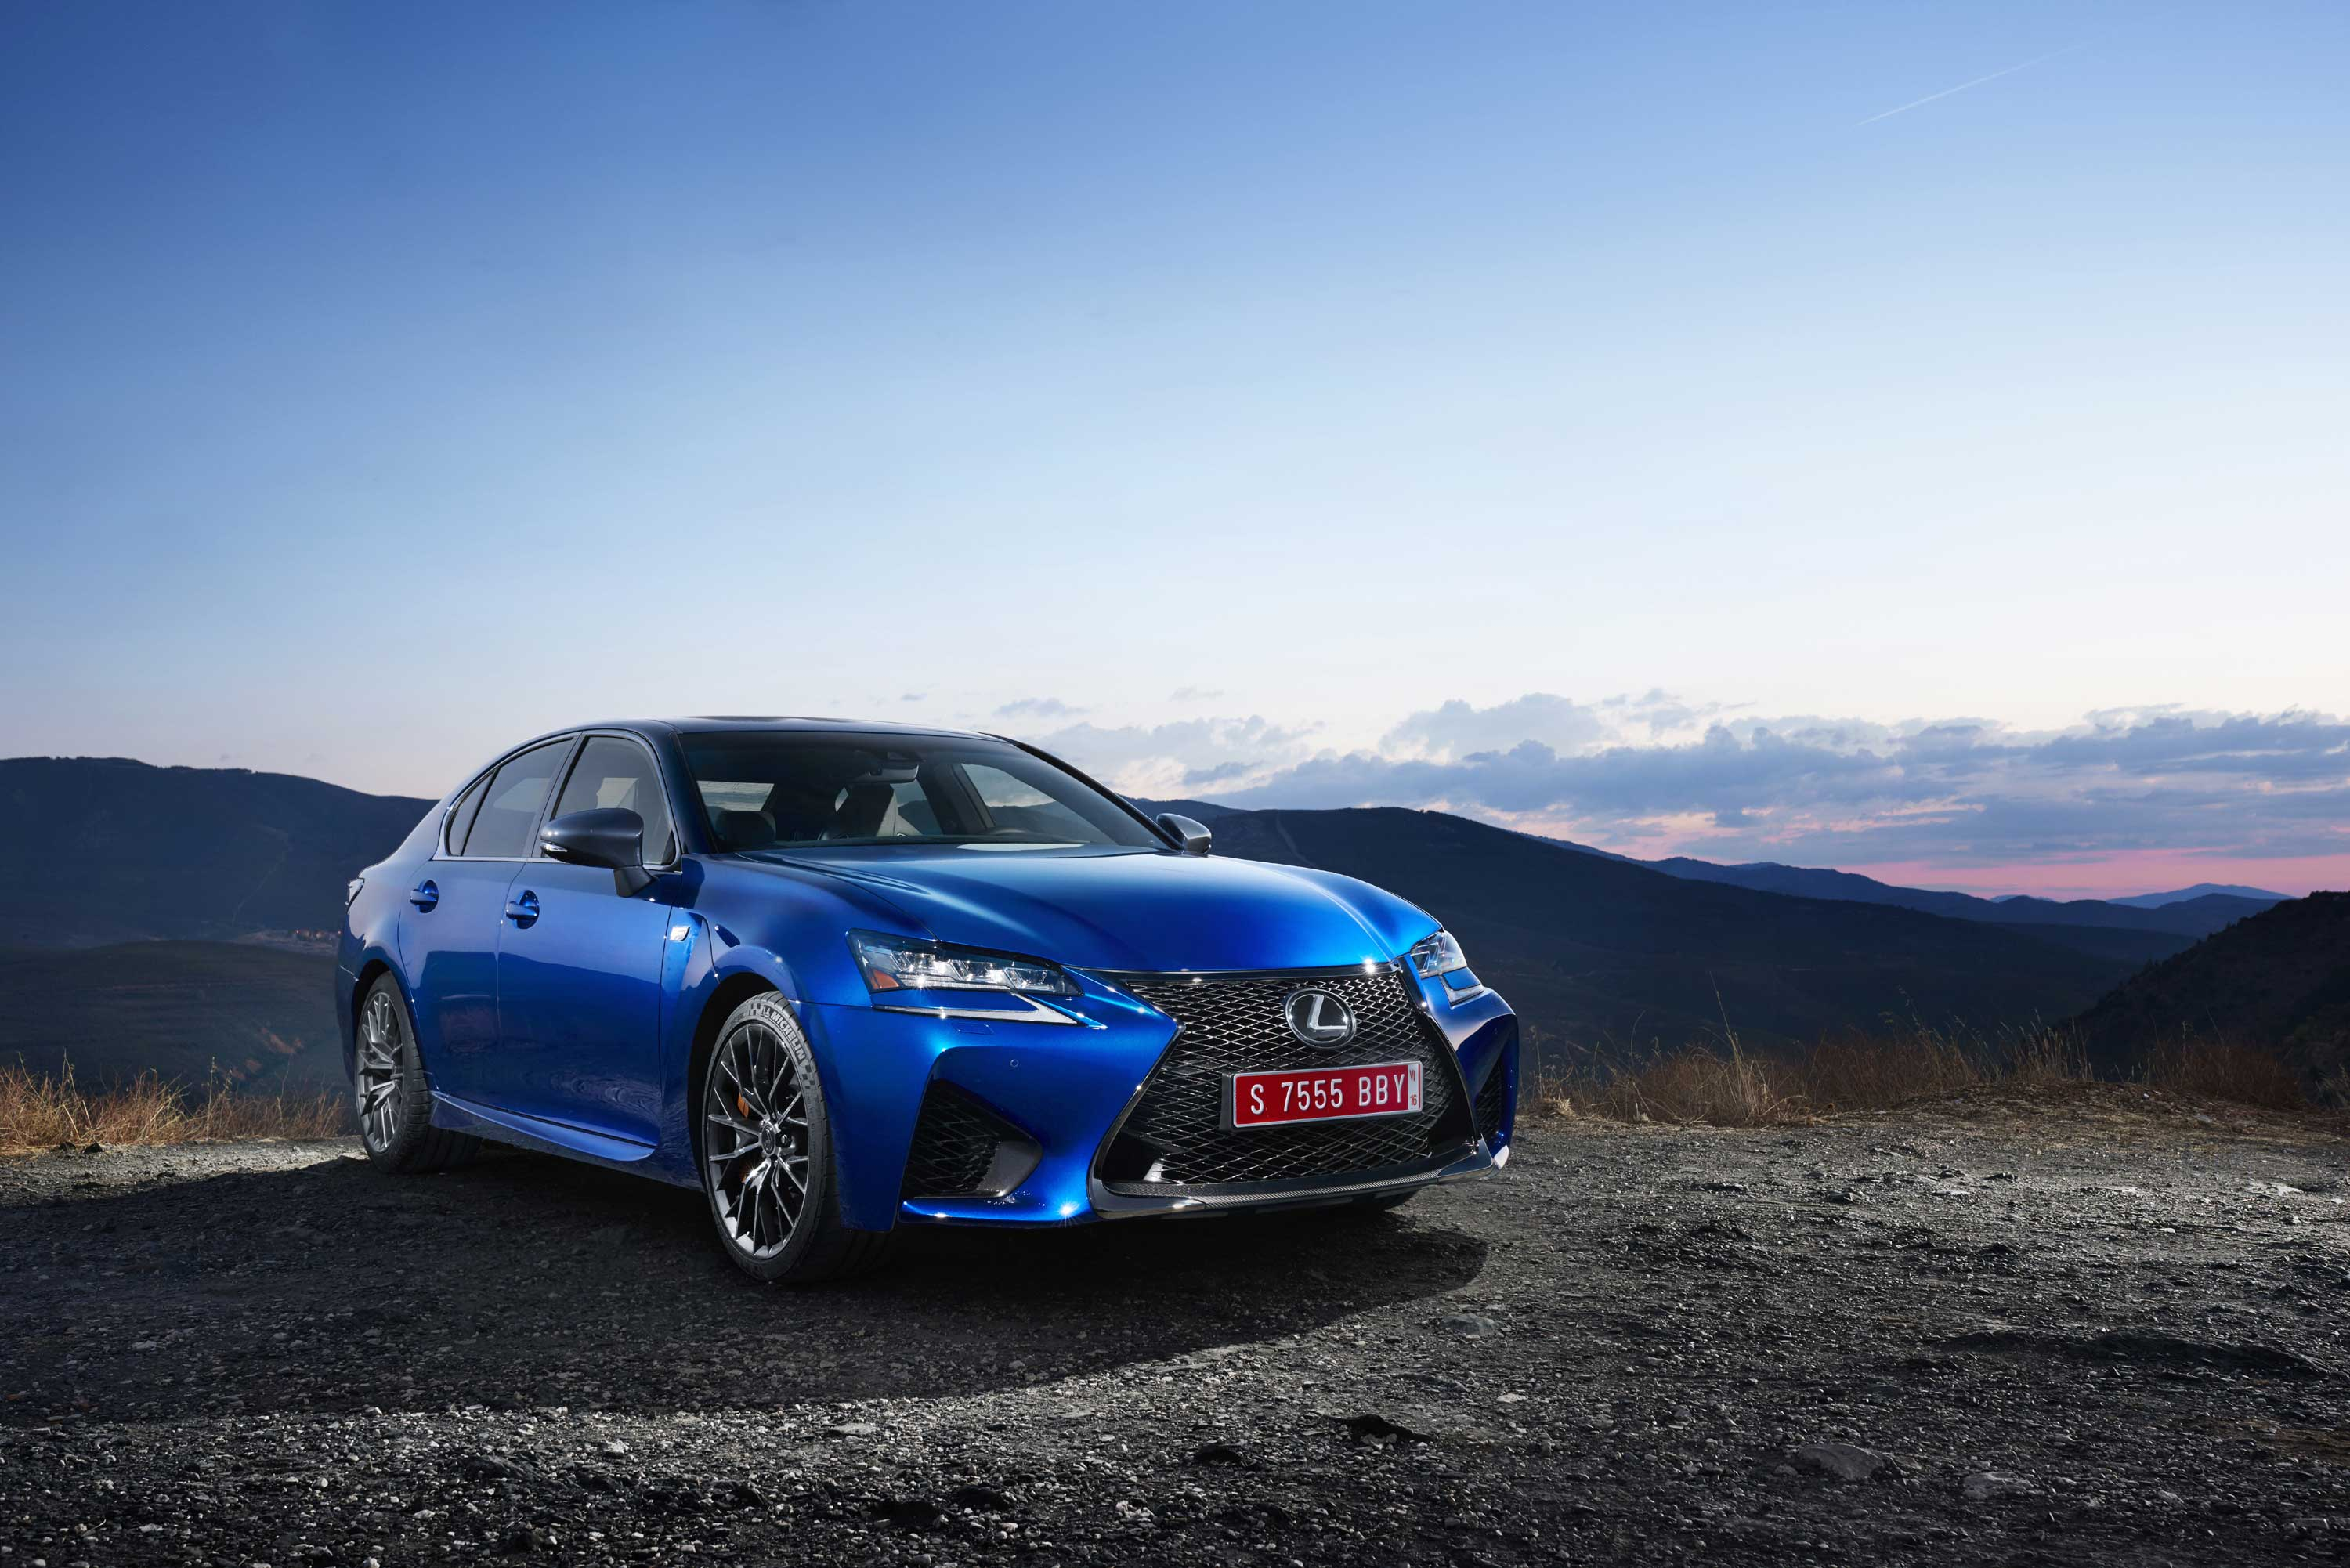 The 2016 Lexus GS F at Northwest Lexus